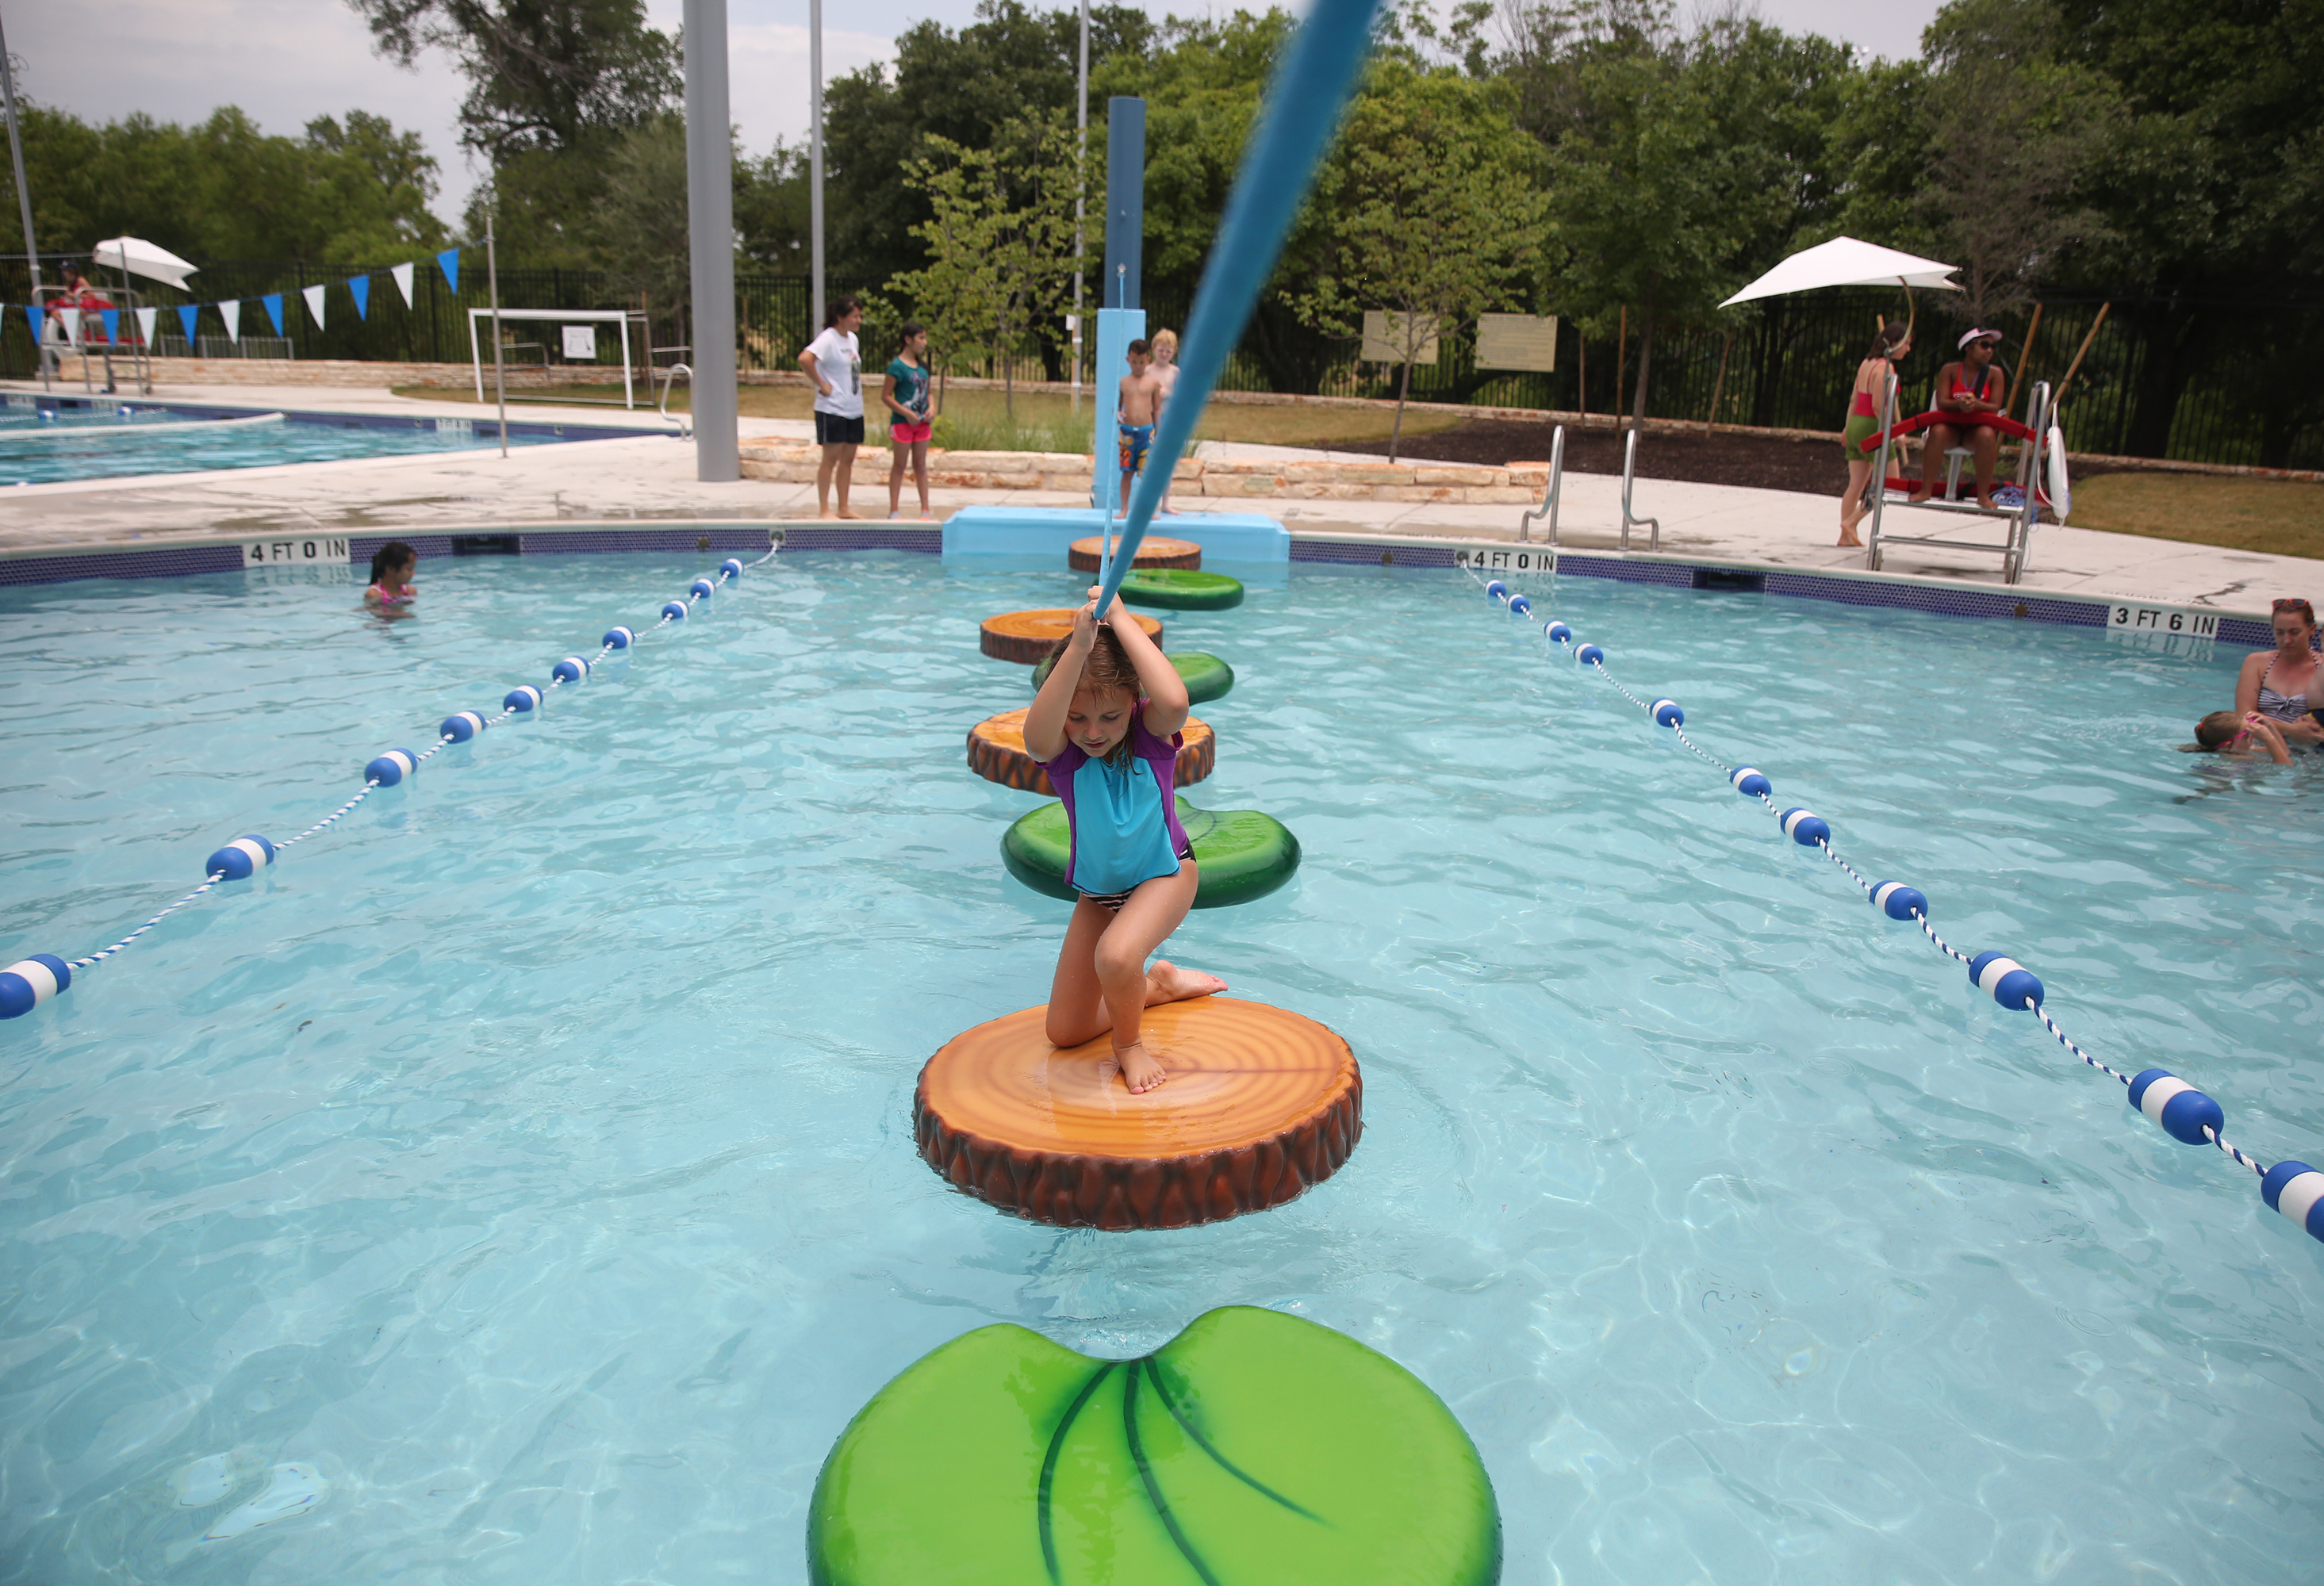 Austin has an abundance of swimming pools for families